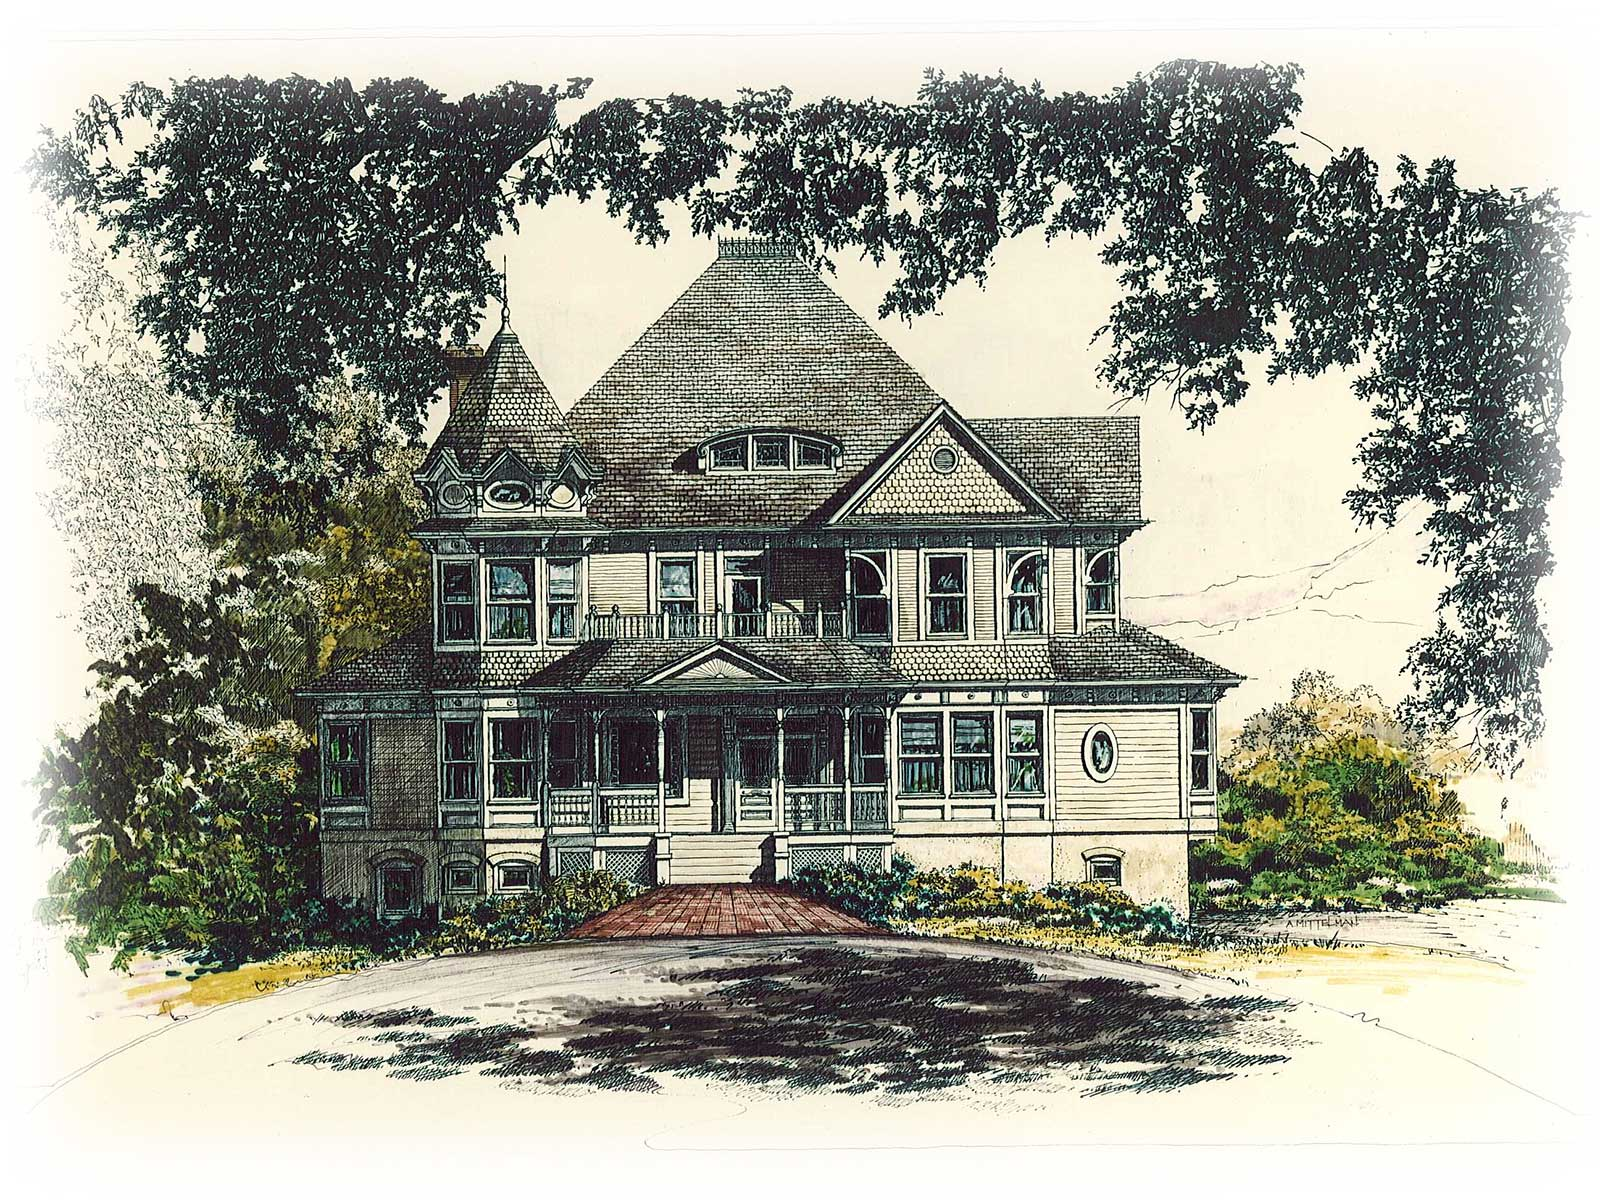 Home builders canton ohio - Zablo And Sons Custom Home Concept Art Victorian Style Home